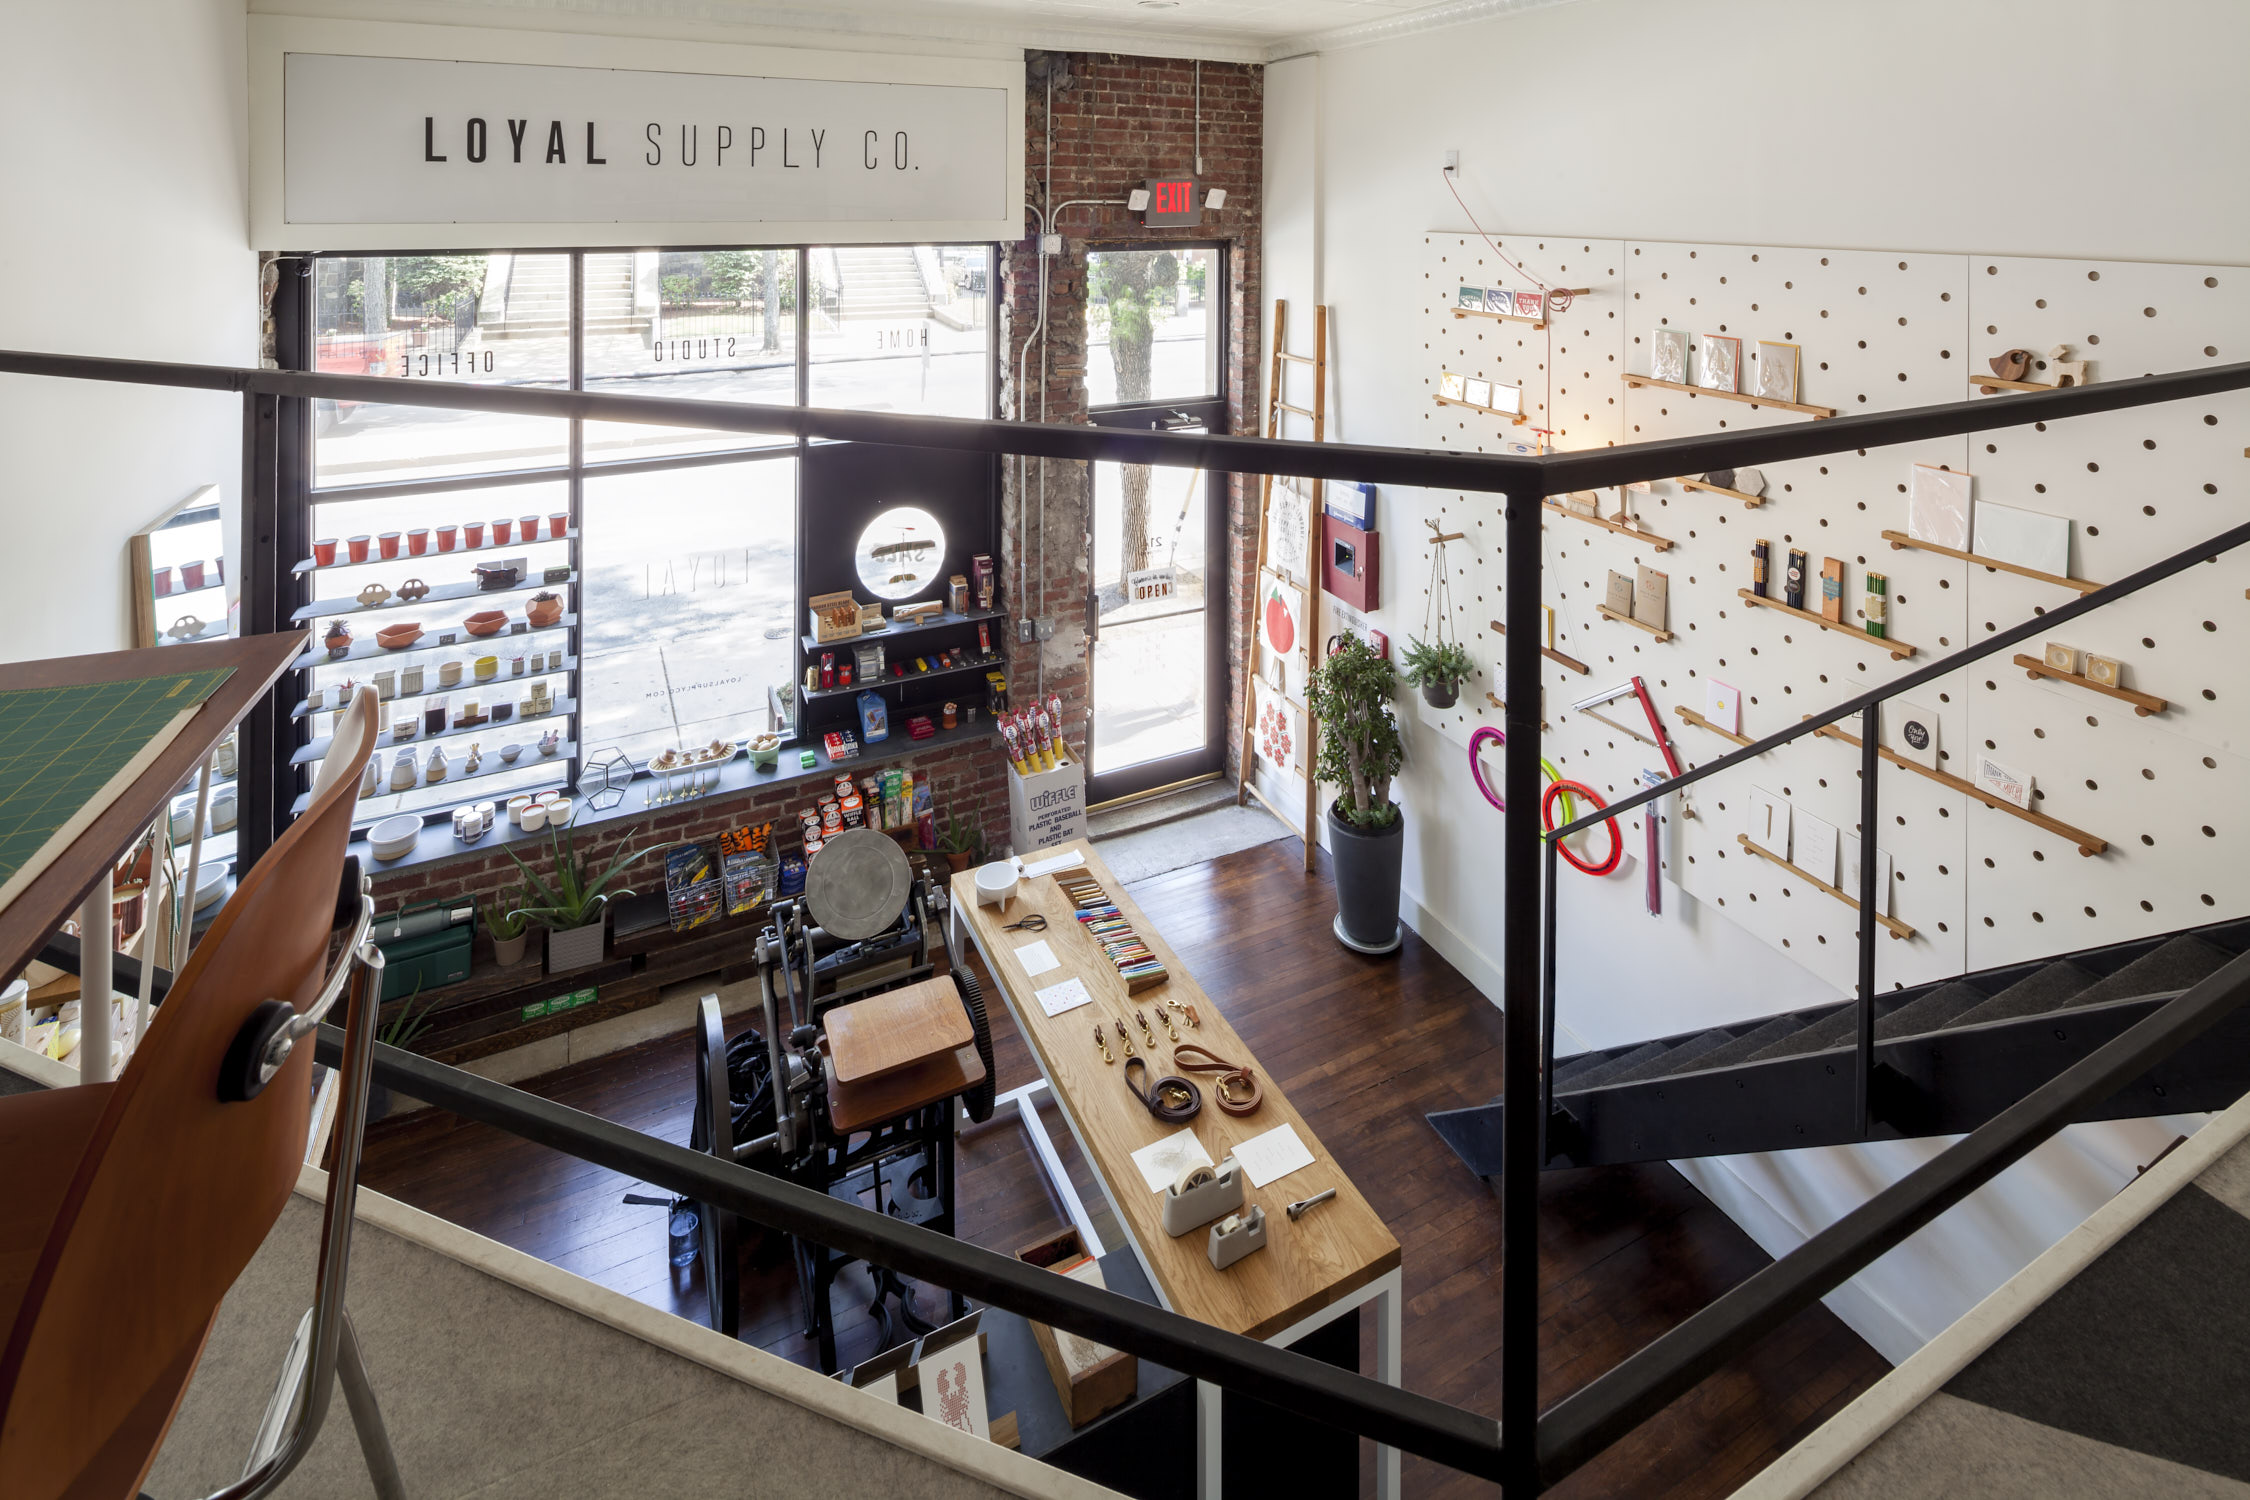 Loyal Supply Co